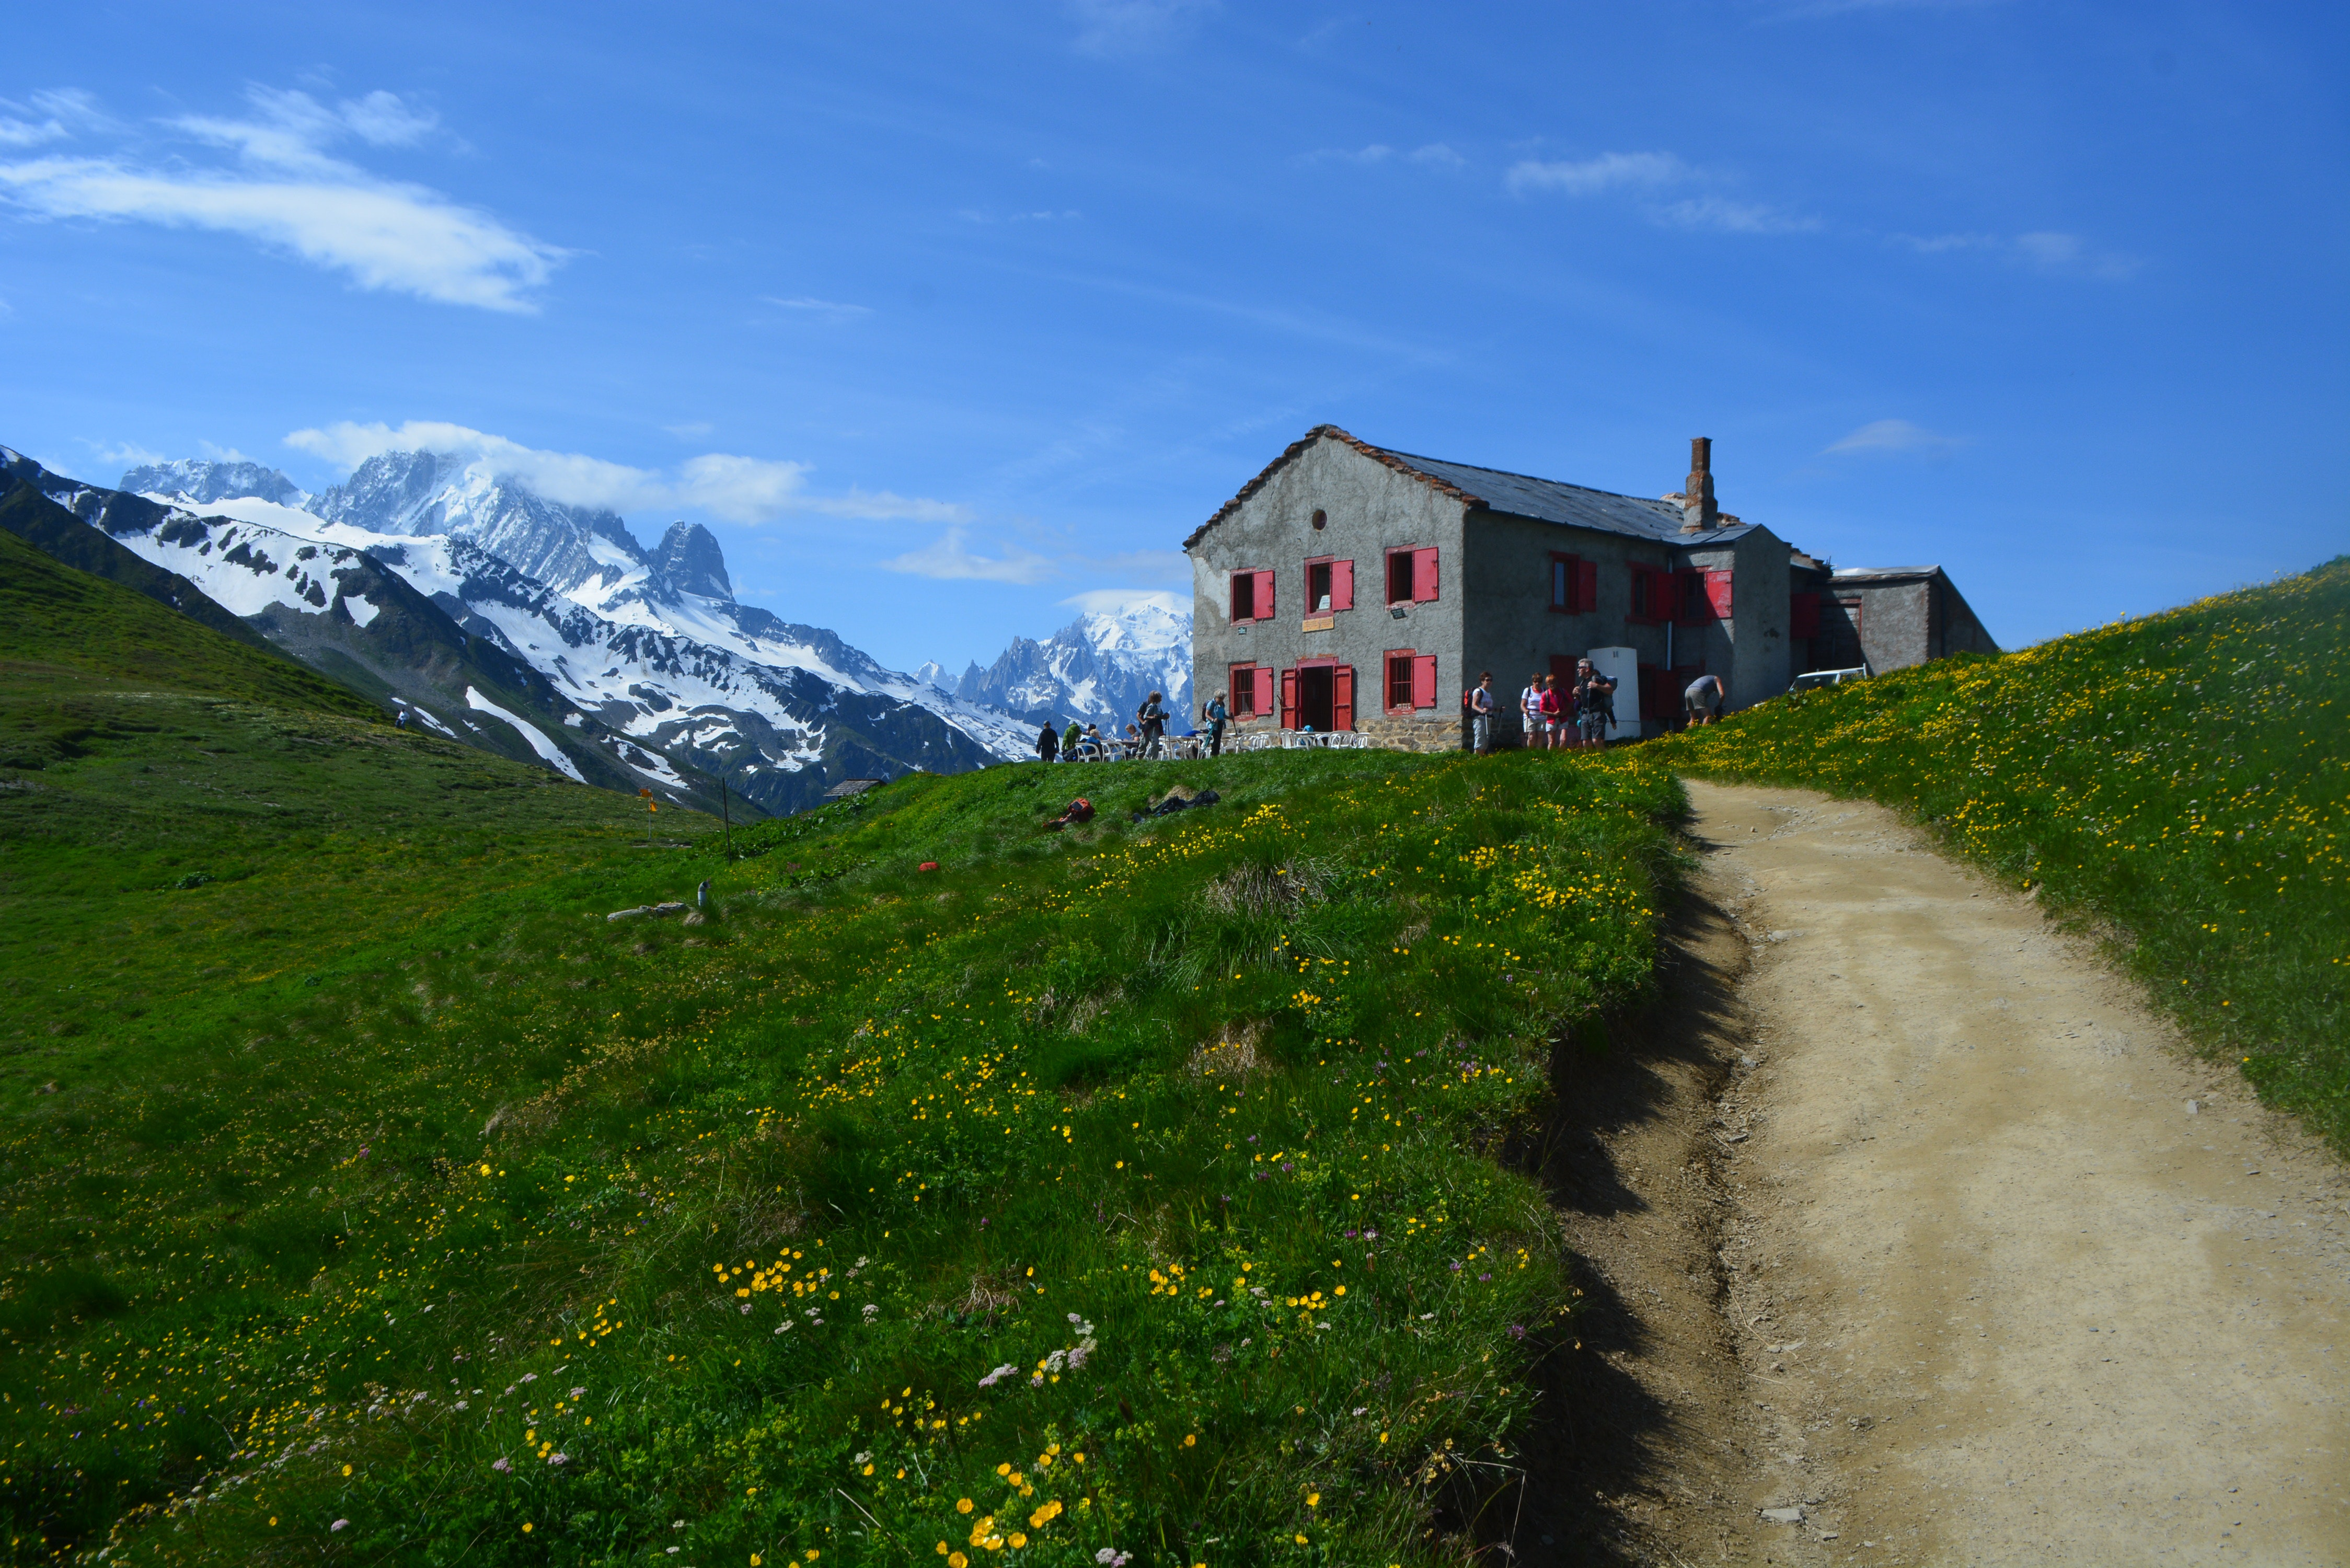 Refuges high in the Alps allow hikers to sleep under roofs, eat warm meals, and meet other travelers during their trek.